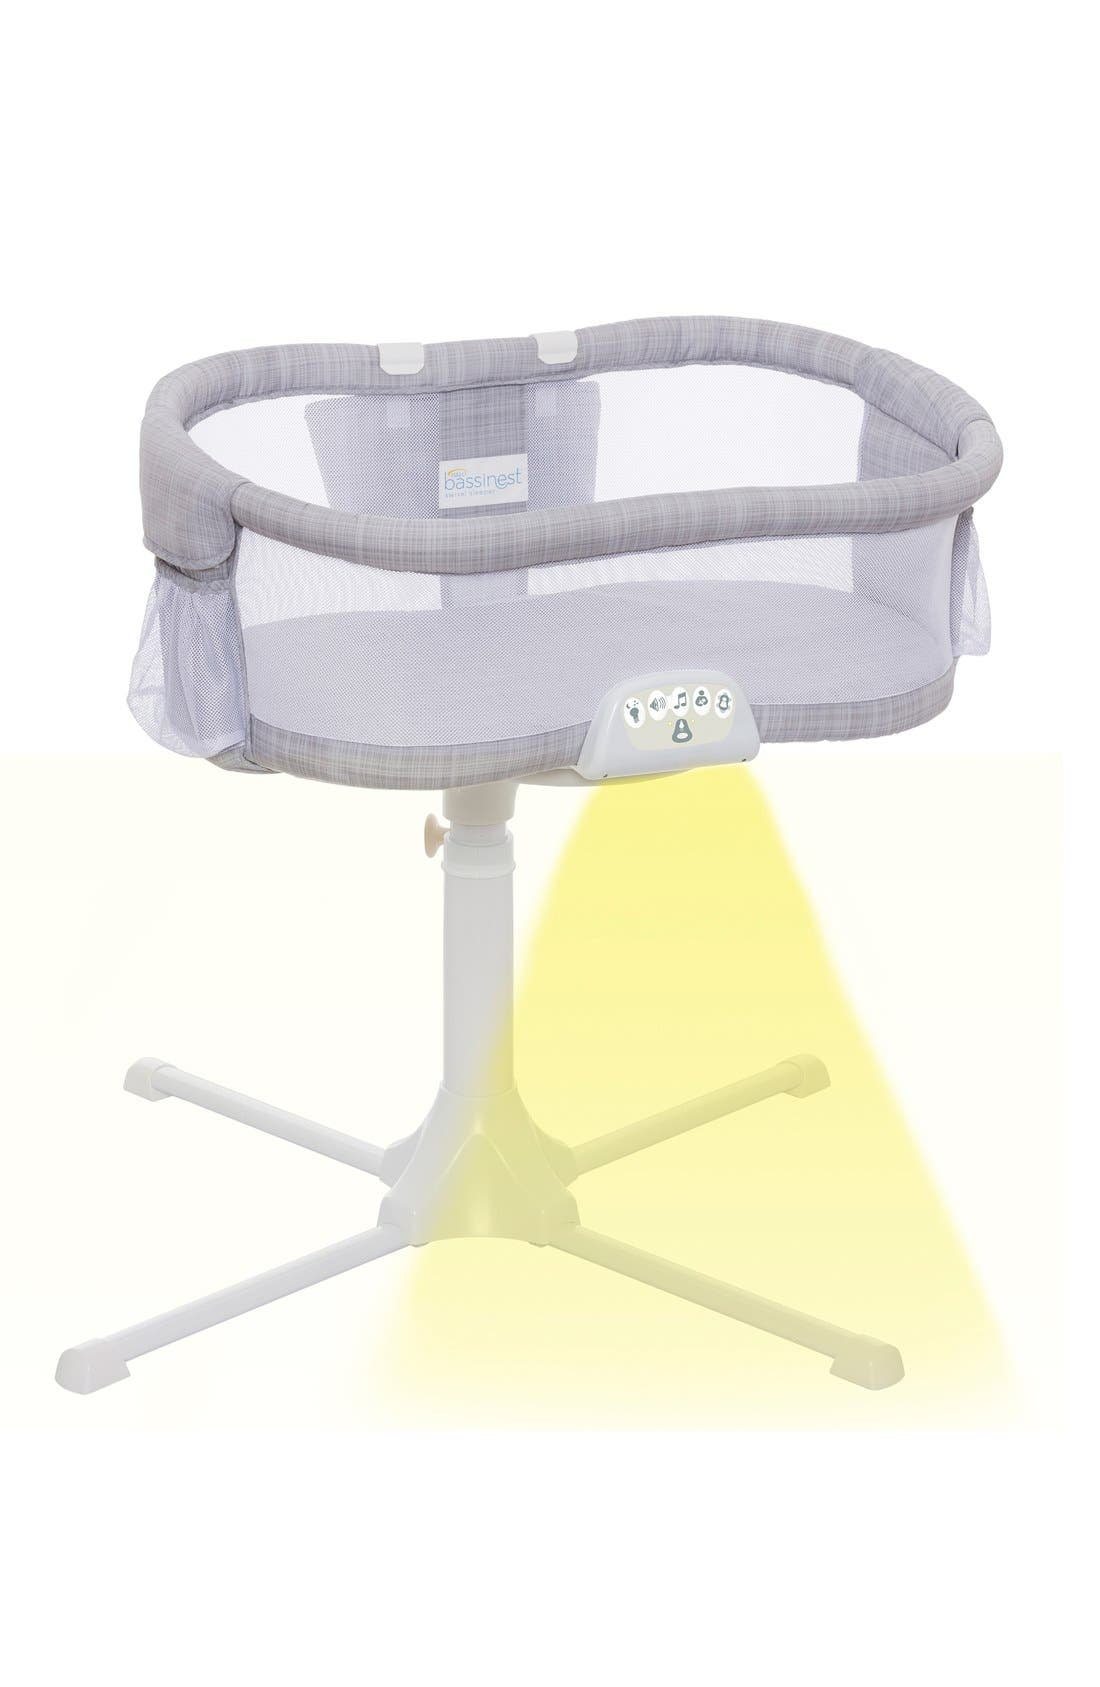 Halo Innovations<sup>®</sup> Bassinest LUXE Plus Bedside Swivel Sleeper,                             Alternate thumbnail 8, color,                             Gray Melange